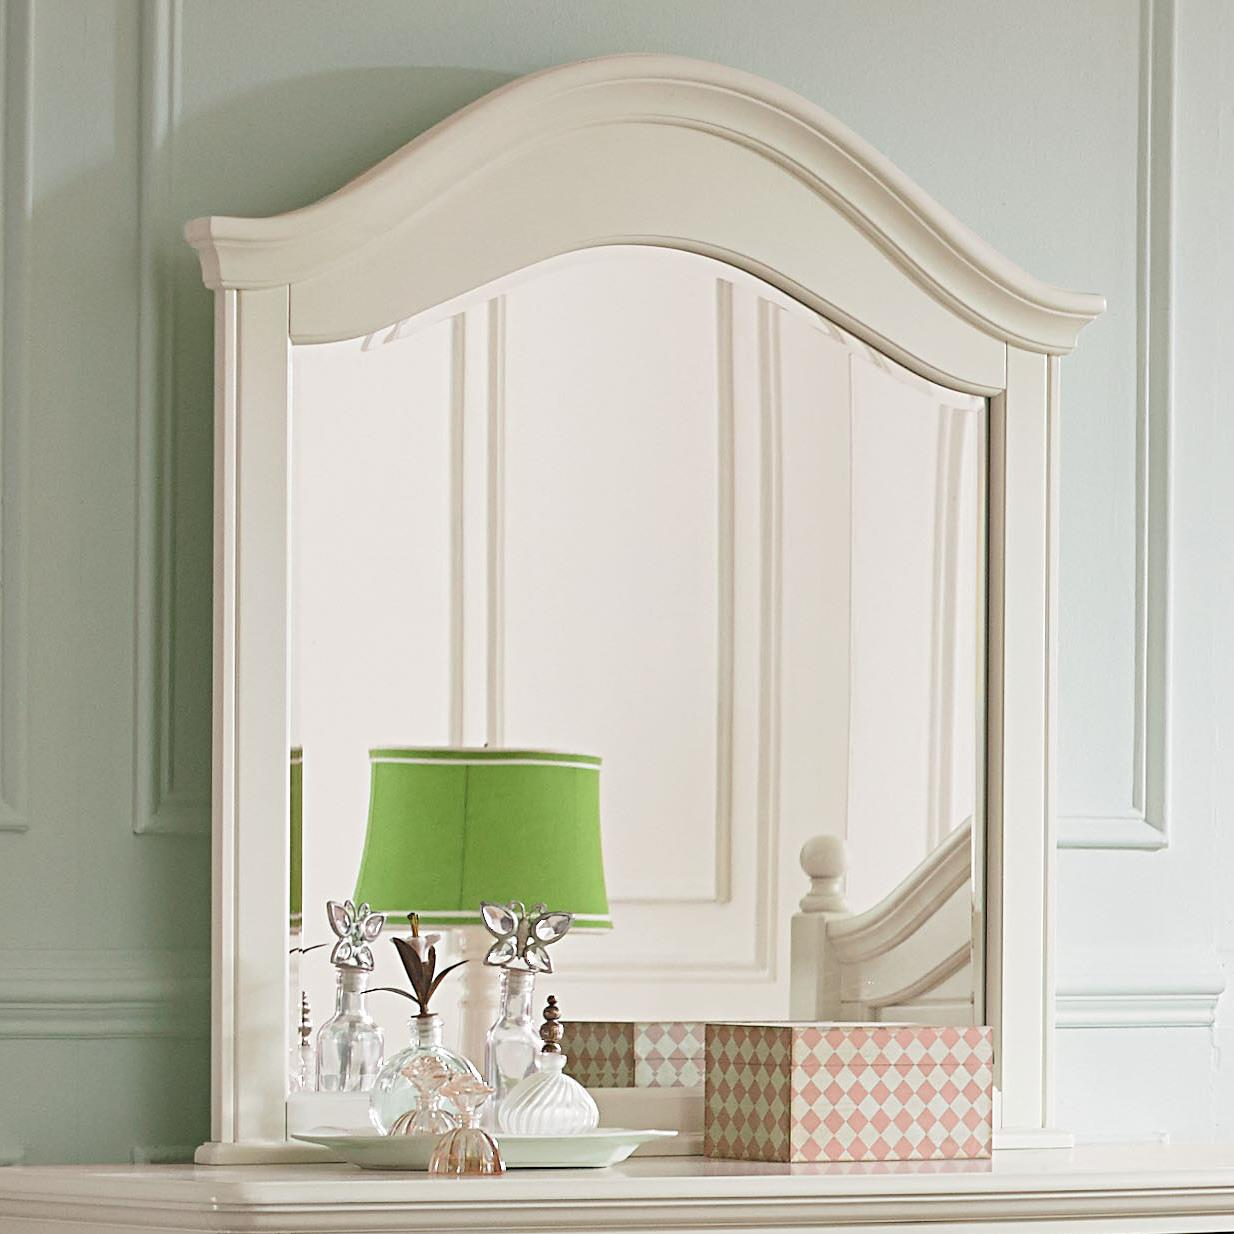 Standard Furniture Camellia Marshmallow Cottage Mirror                 - Item Number: 95208